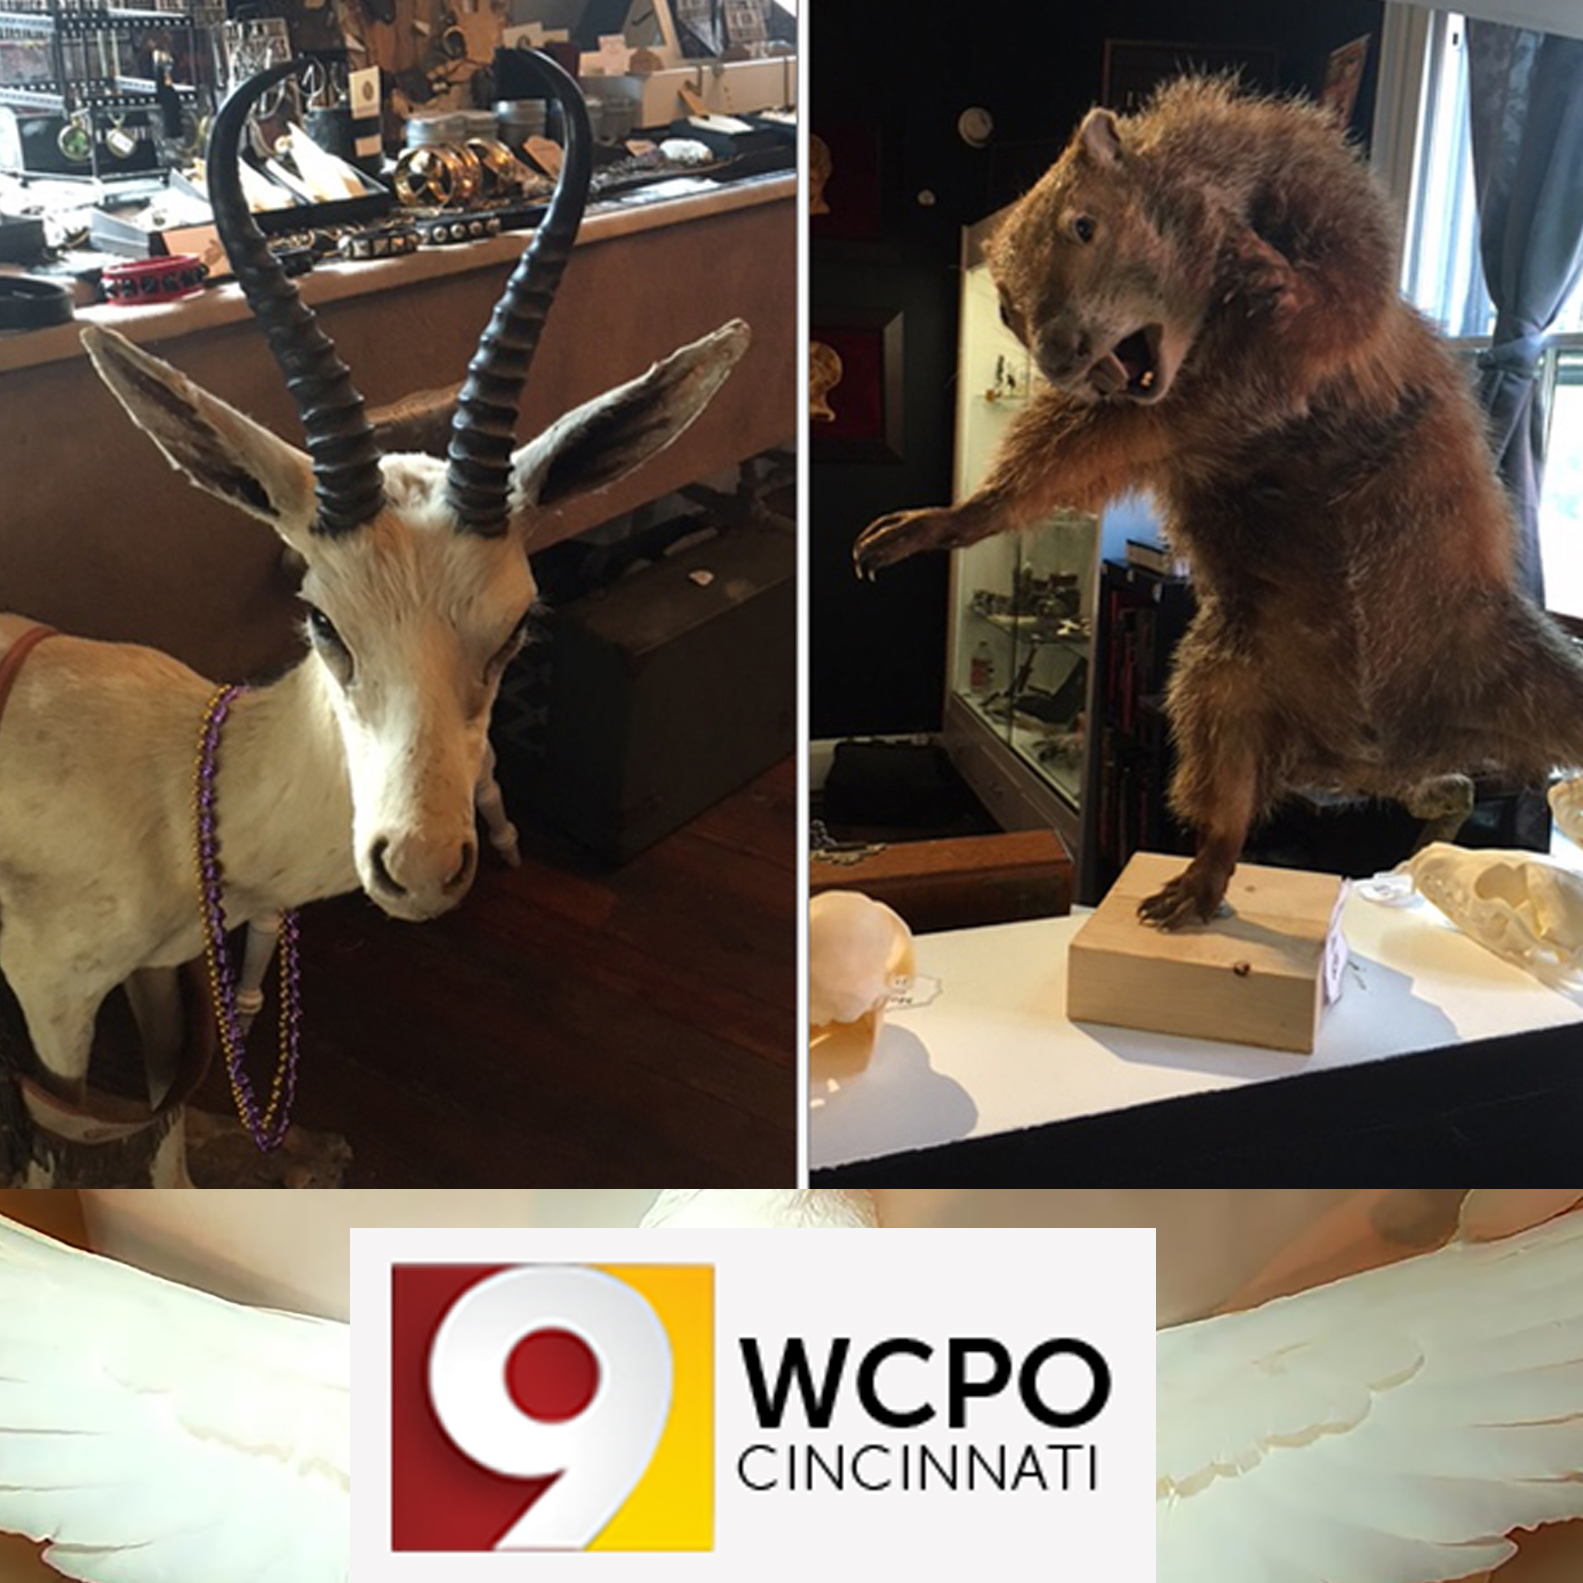 WCPO – At Hail Dark Aesthetic in Covington, the macabre, the morbid and the music reign